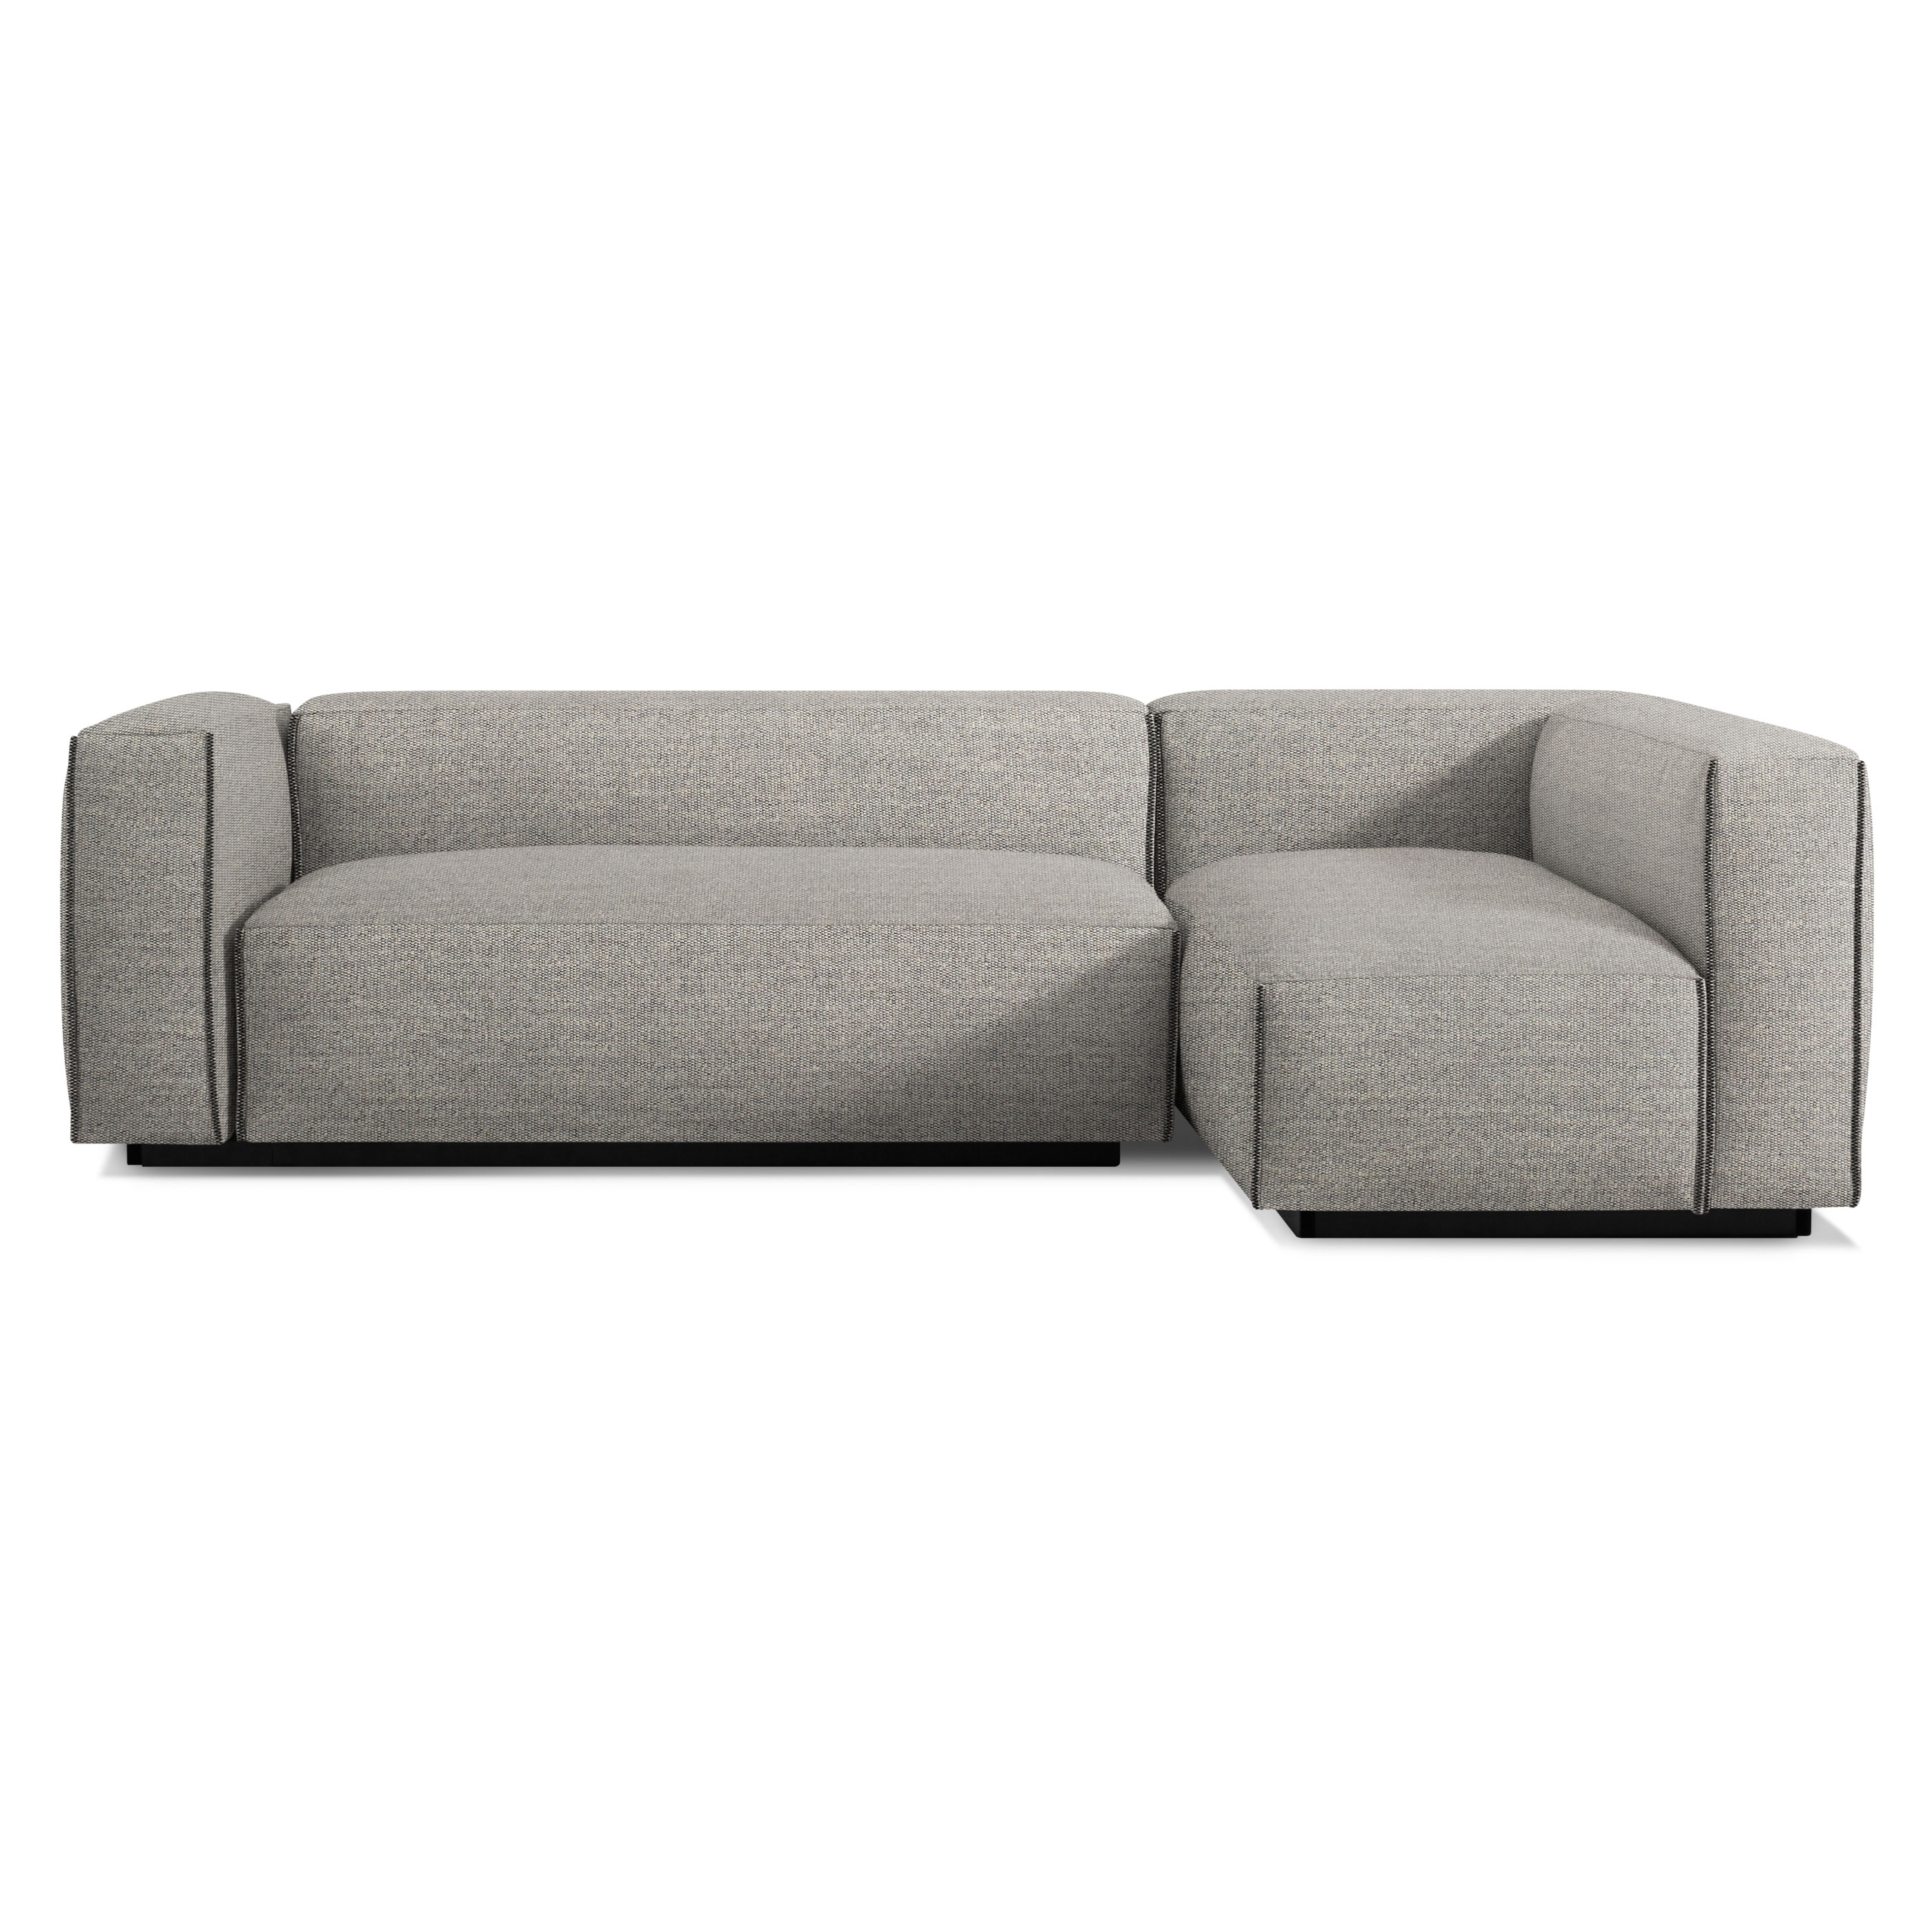 Cleon Small Modern Sectional Sofa | Blu Dot Pertaining To Newfoundland Sectional Sofas (View 4 of 10)